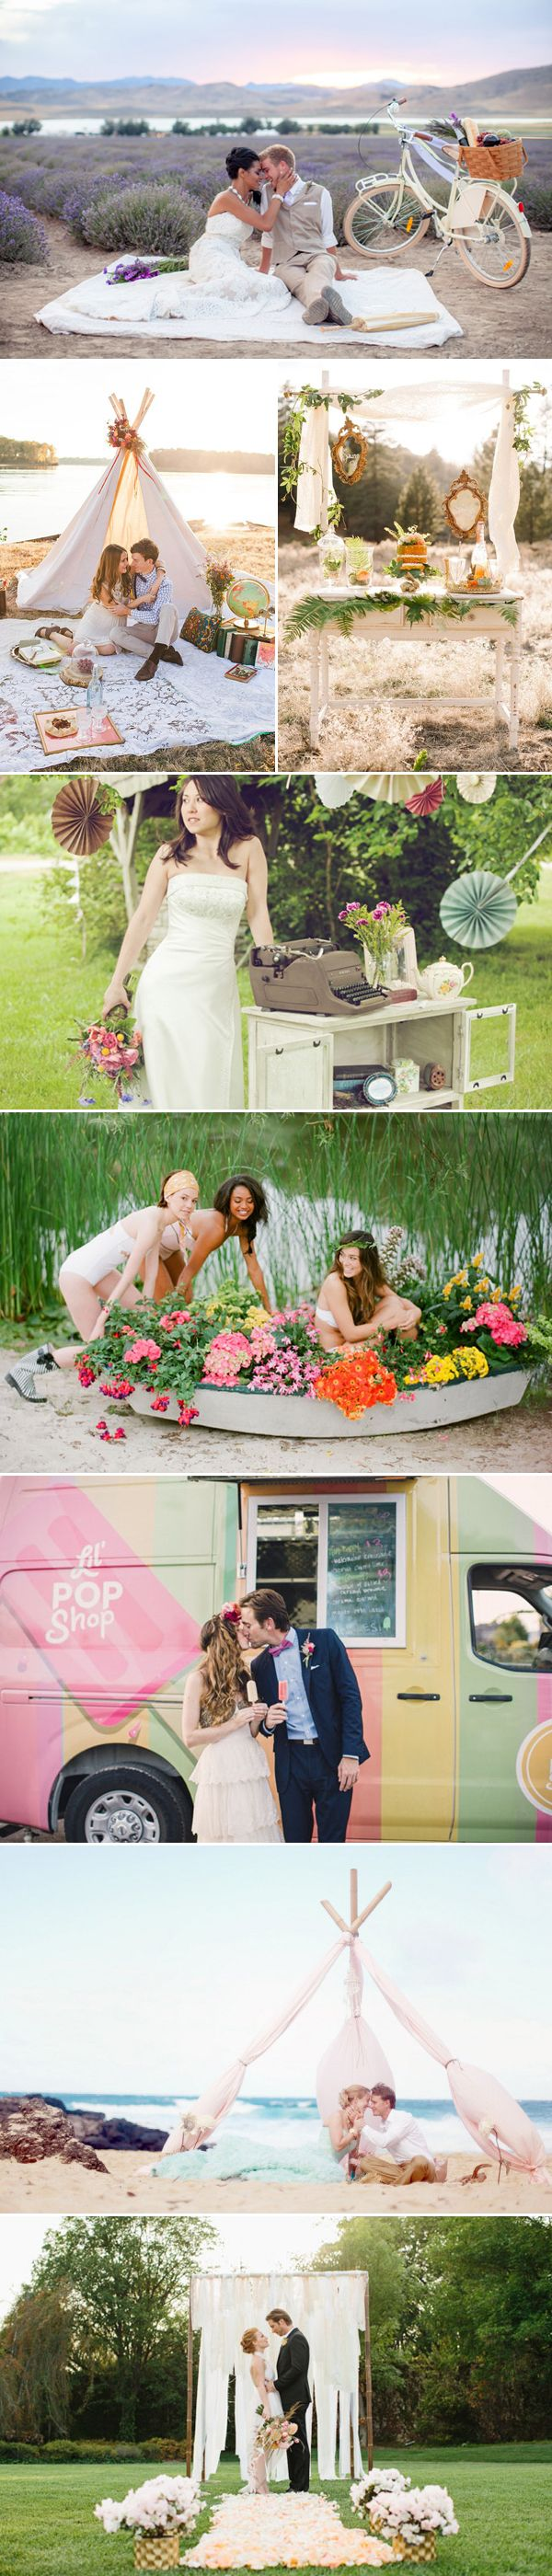 17 Creative Ideas to Style Your Engagement Shoot - Outdoors